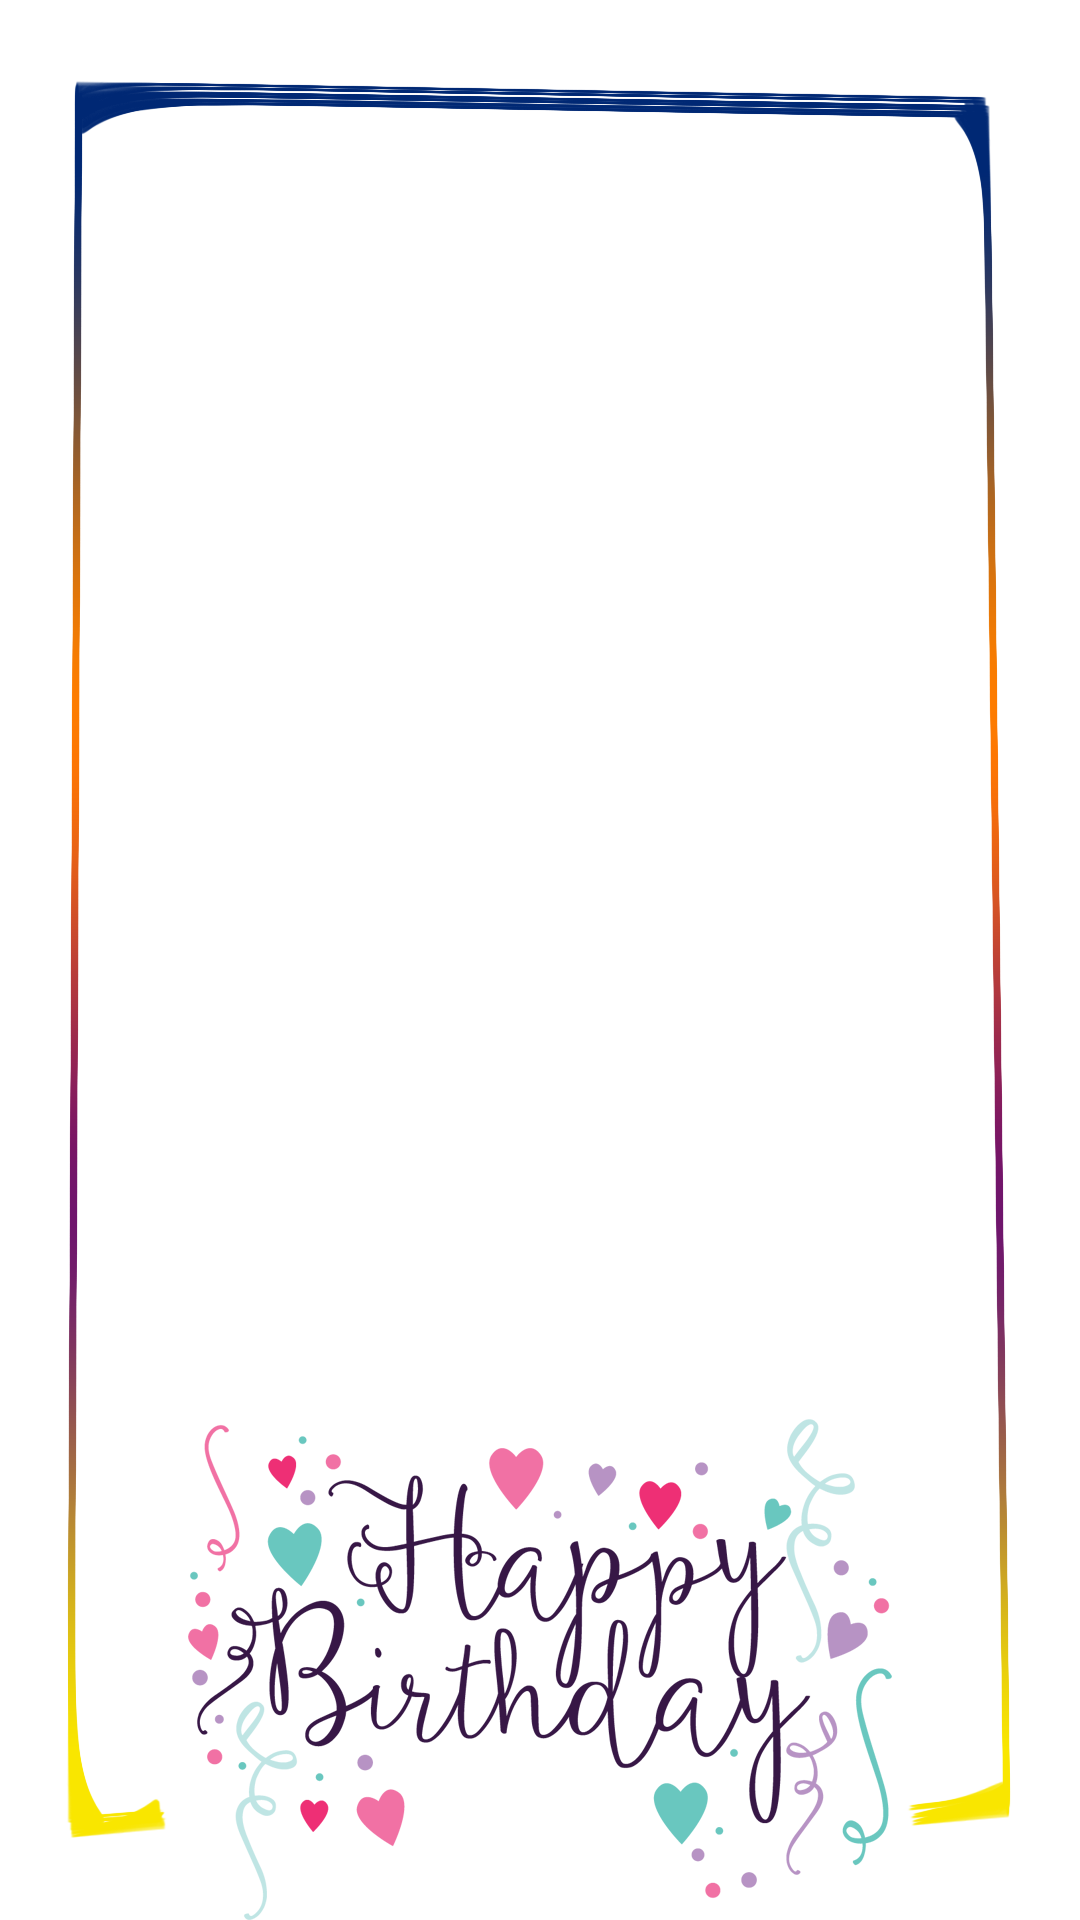 Happy birthday border png. Colorful snapchat filter geofilter